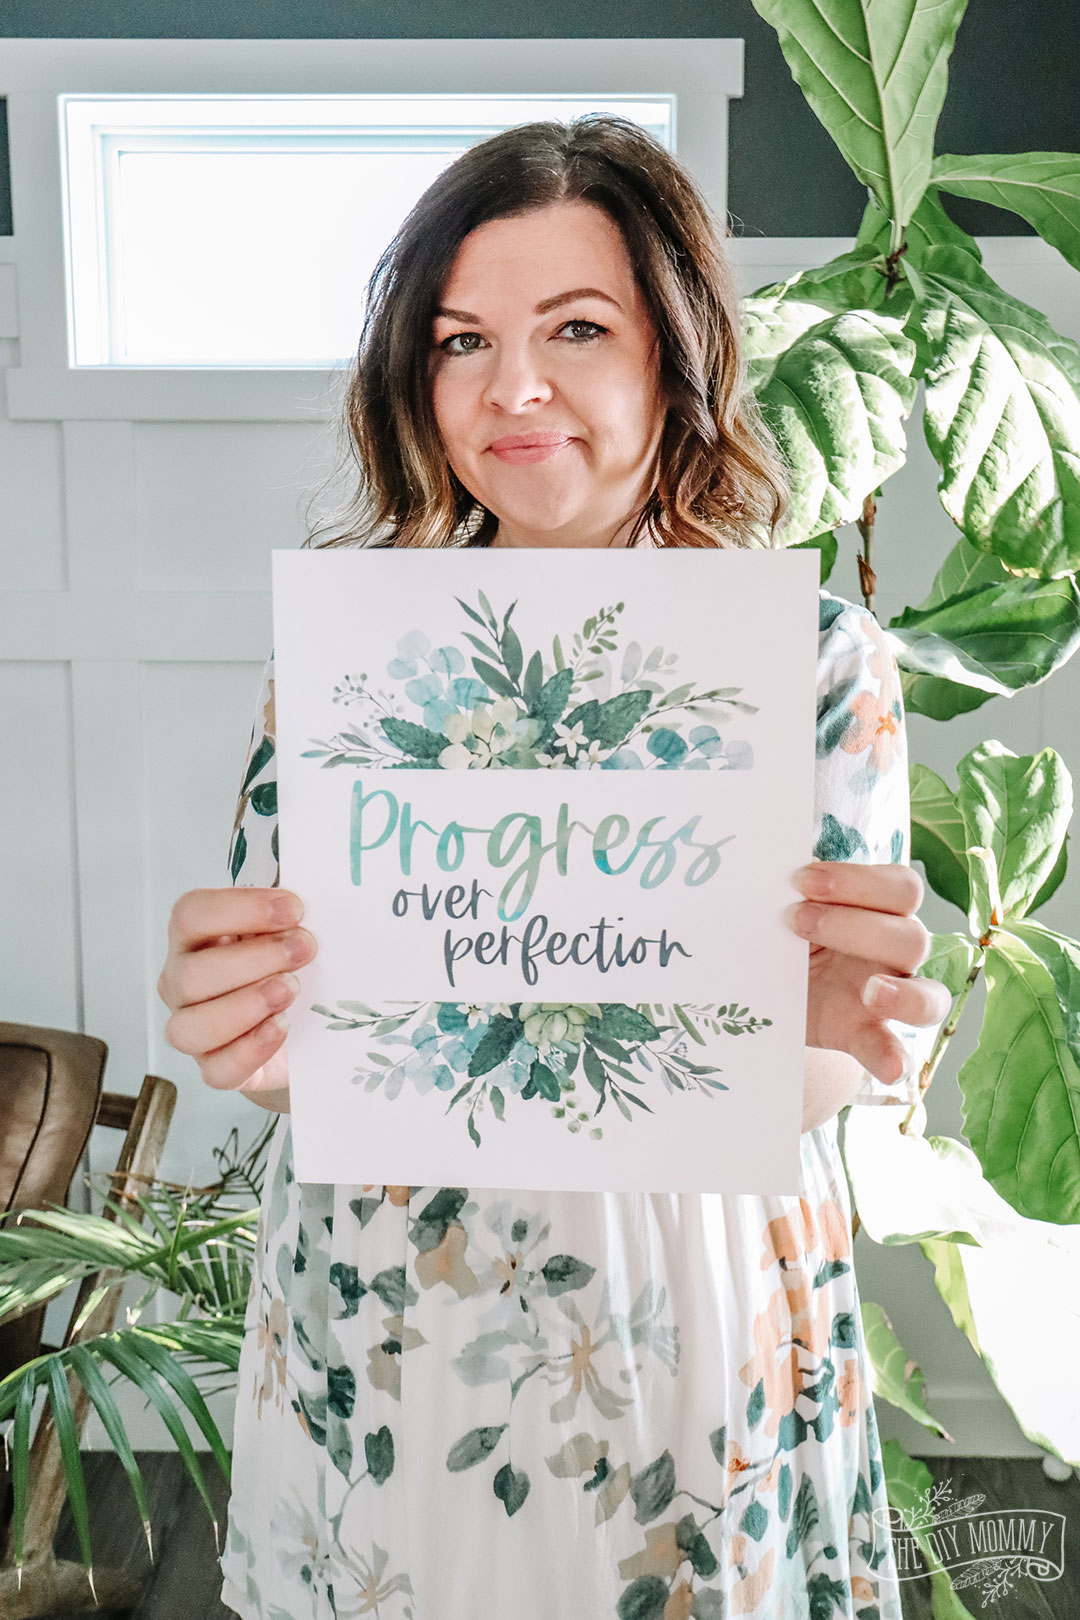 Progress over Perfection - Free Printable Art and Mobile Background